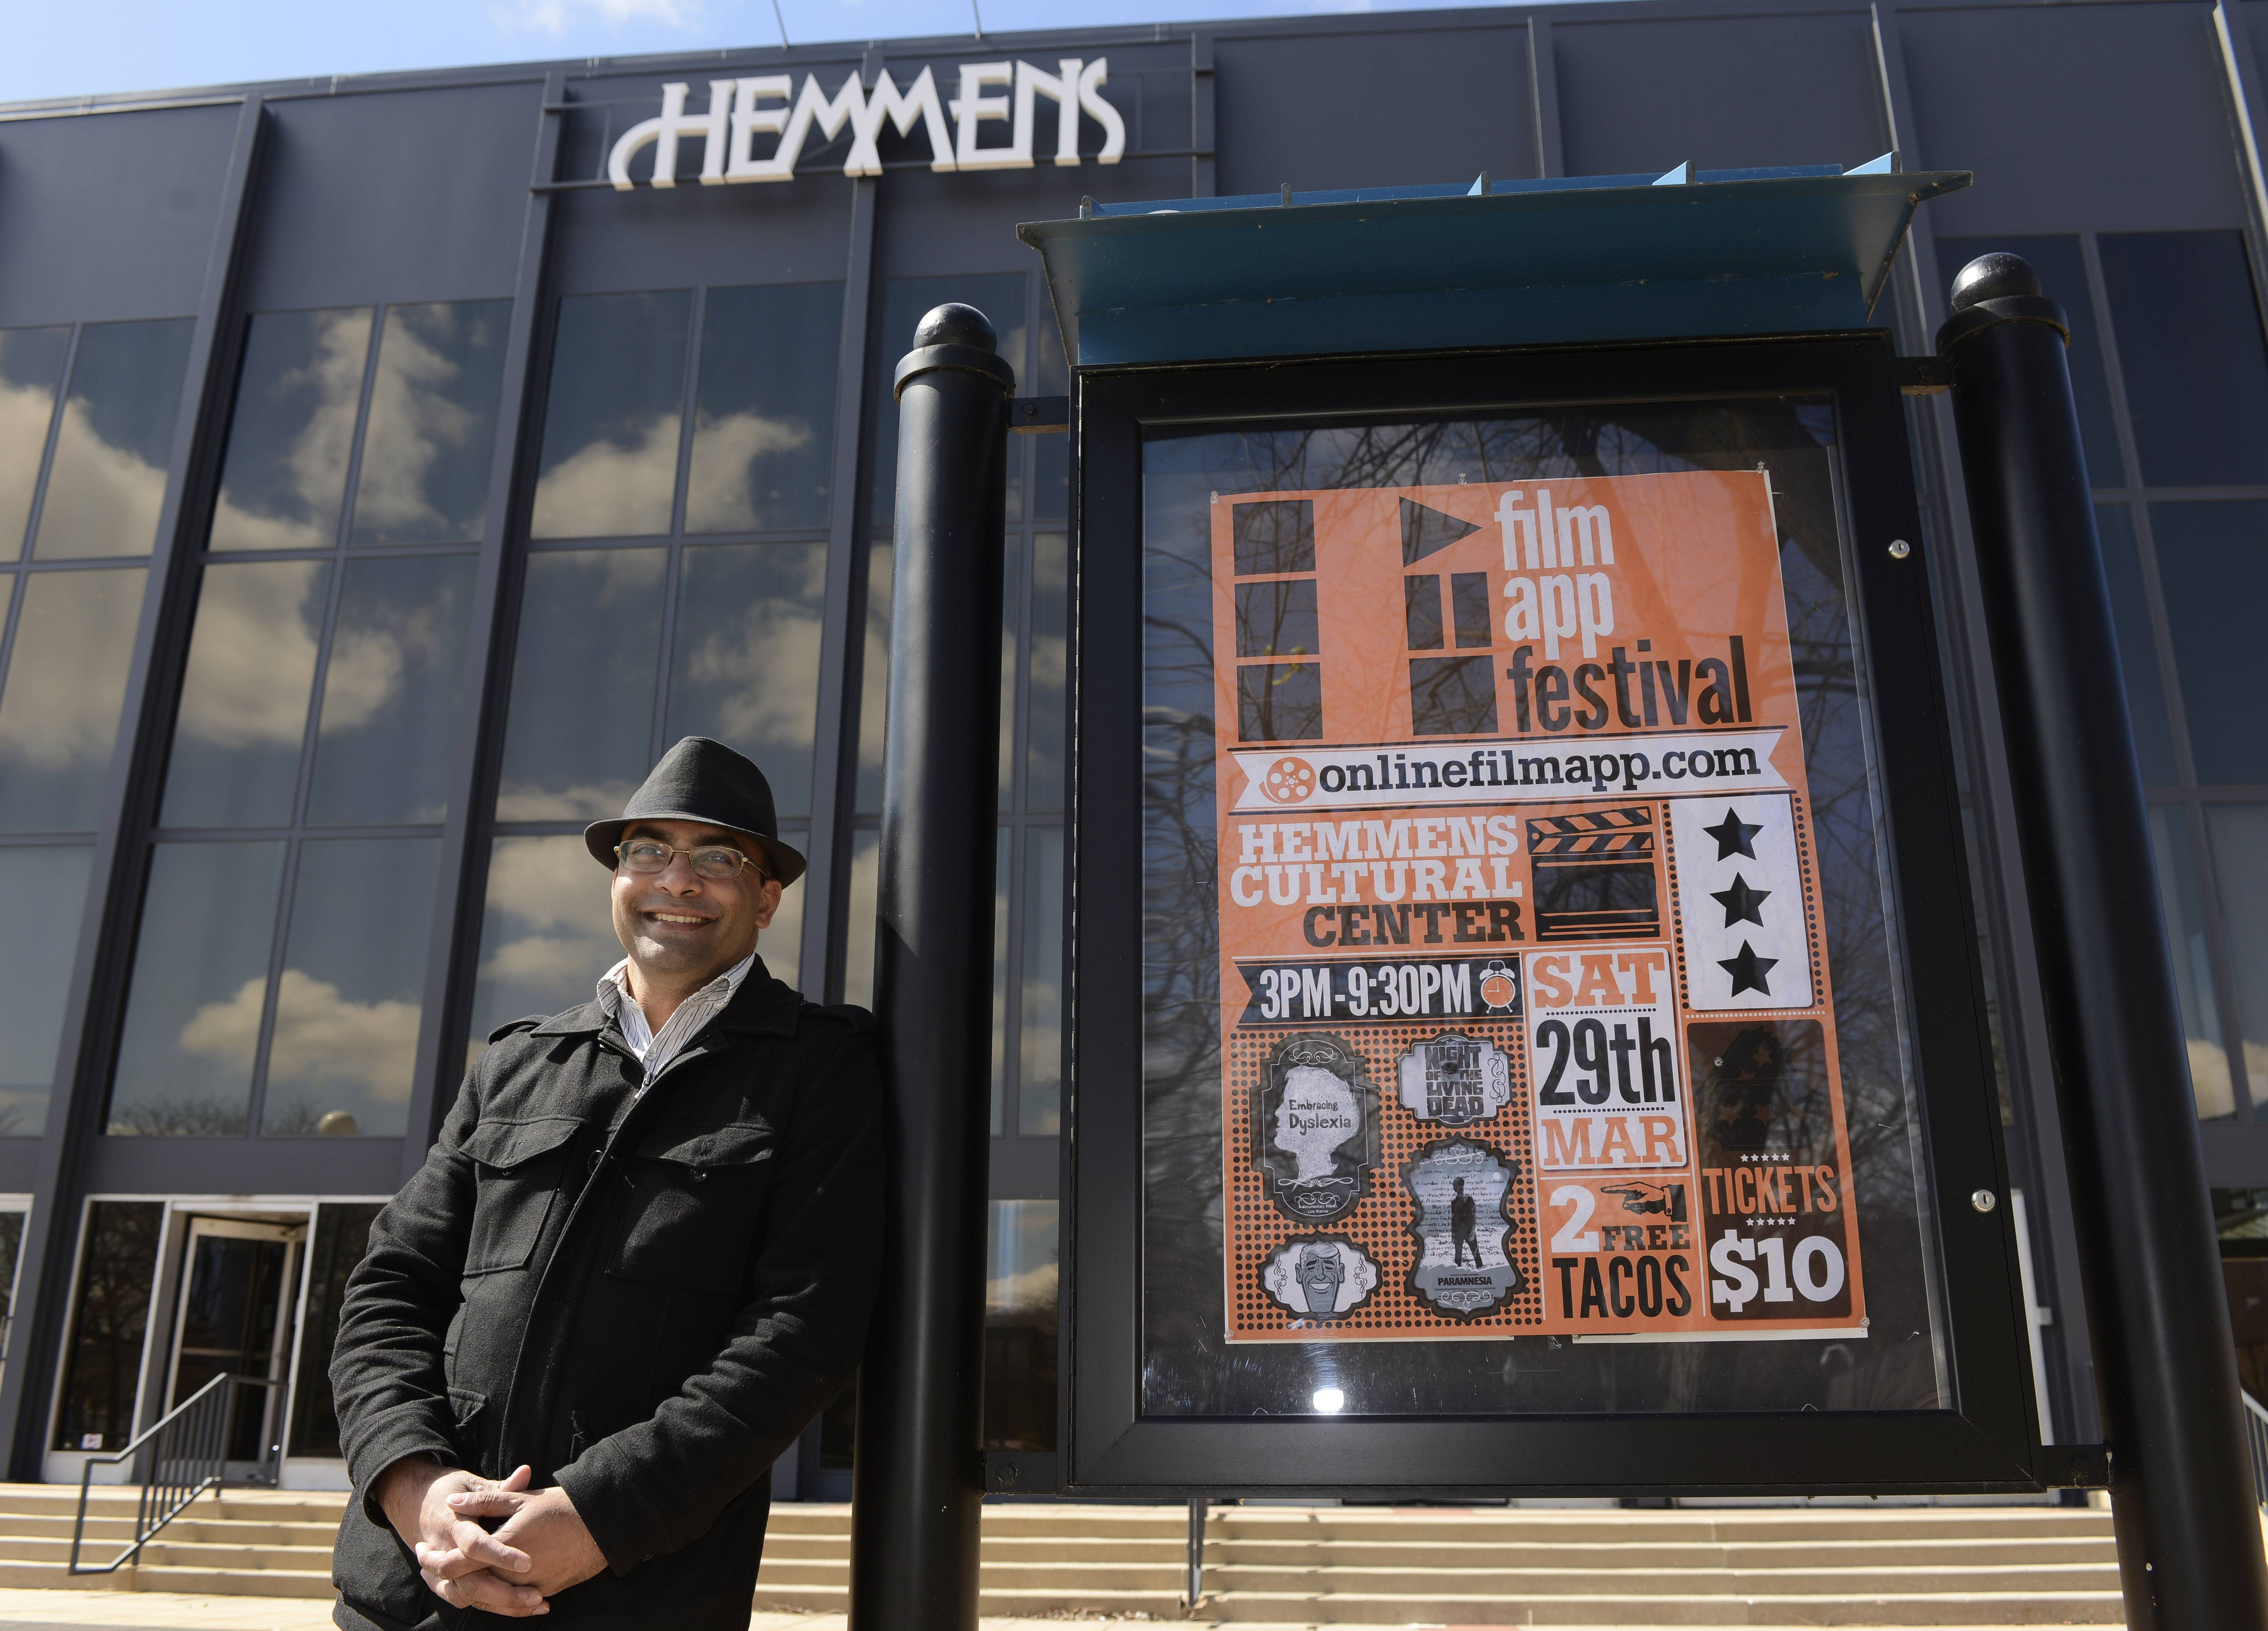 Elgin resident Milan Shah is the brains behind the Film App Festival debuting Saturday, March 29 at the Hemmens Cultural Center.